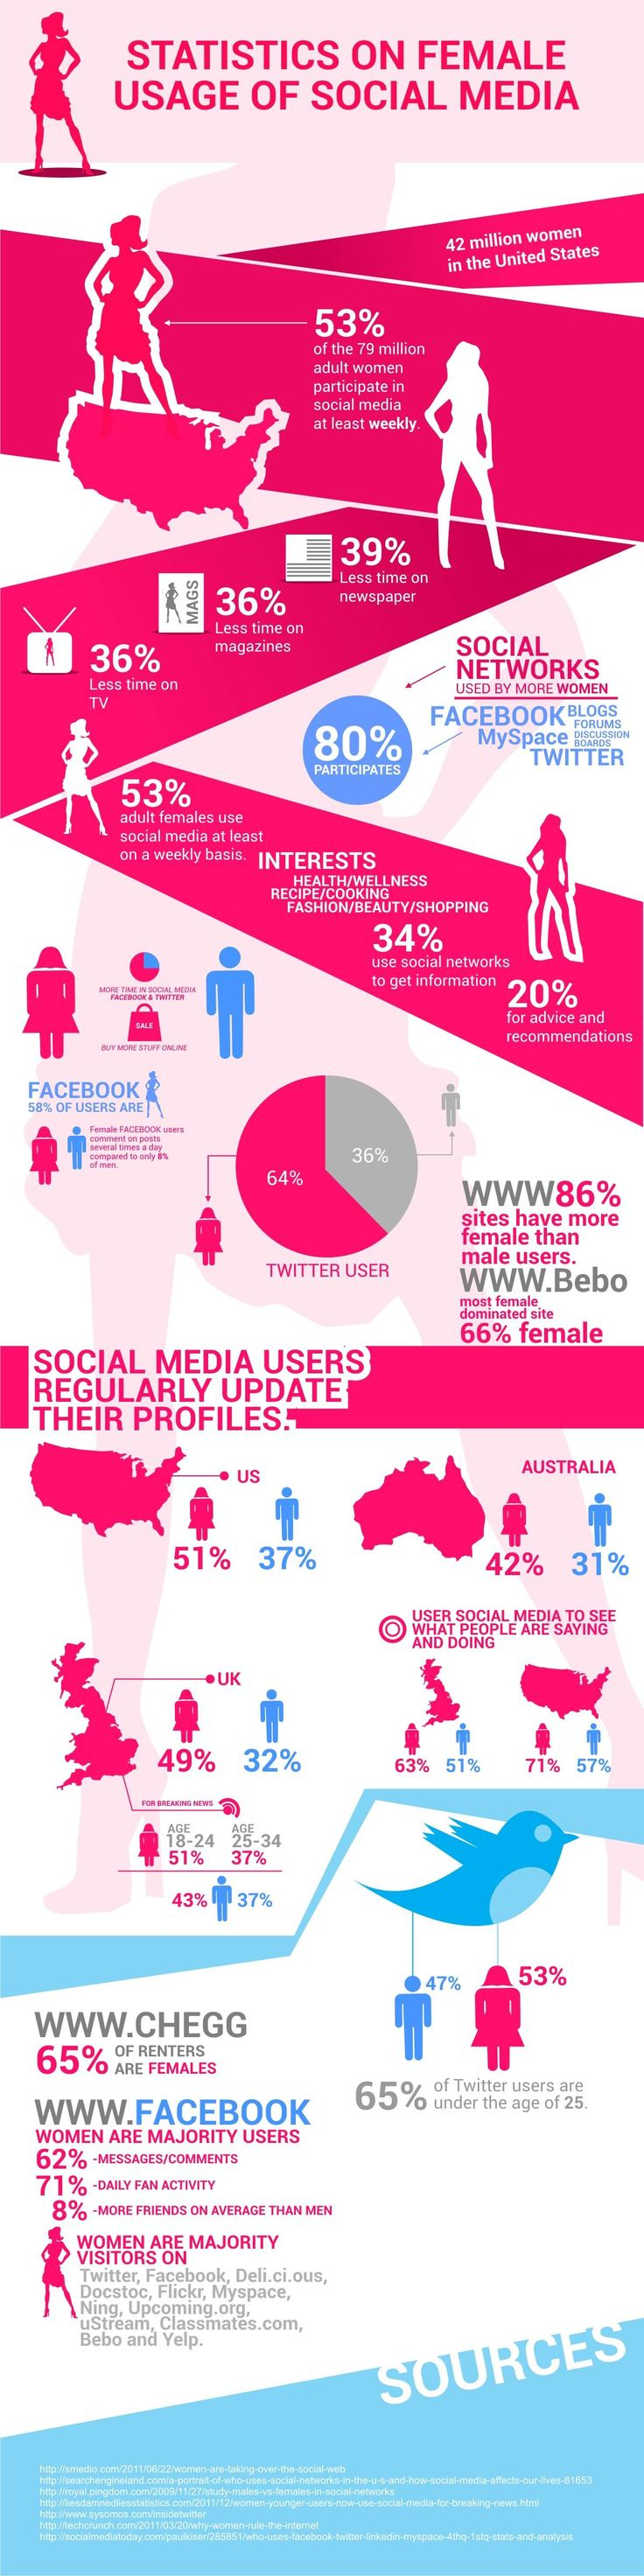 Statistics on female usage of Social Media #infographic